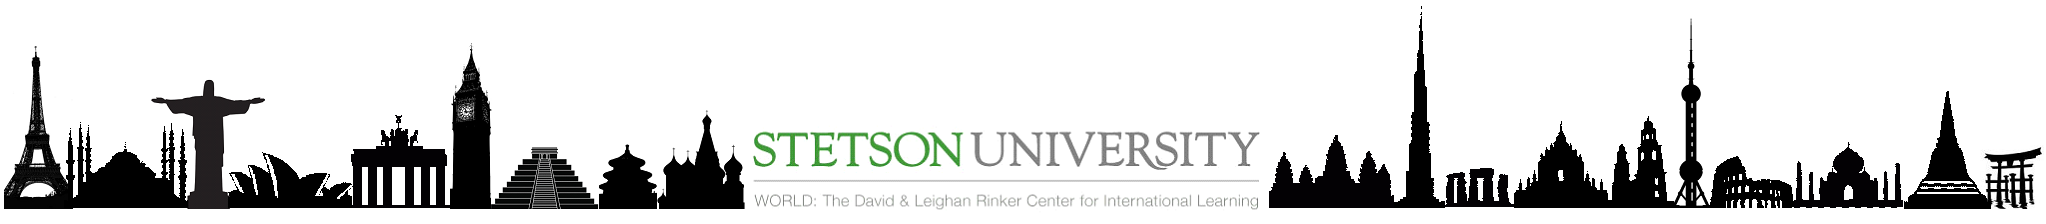 WORLD: The David and Leighan Rinker Center for International Learning at Stetson University - Stetson University